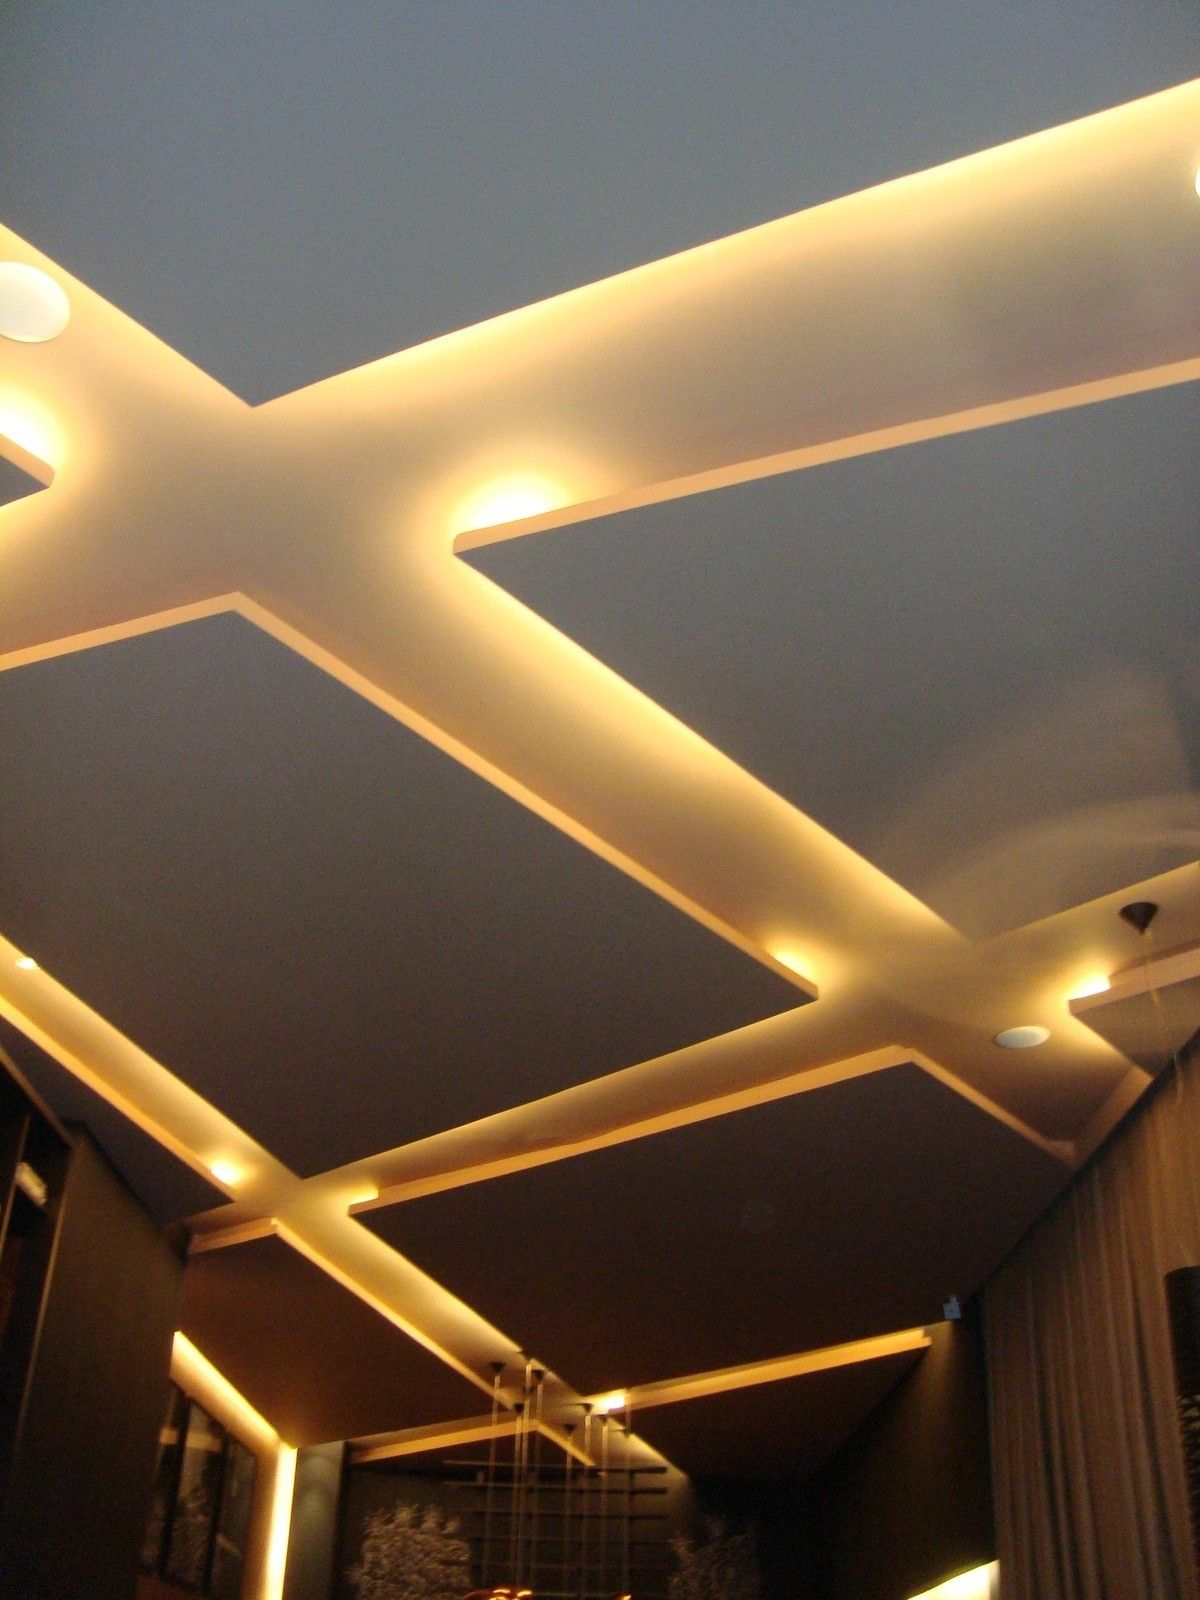 Kids Room False Ceiling Design: الجواد للديكور 03223715 (With Images)